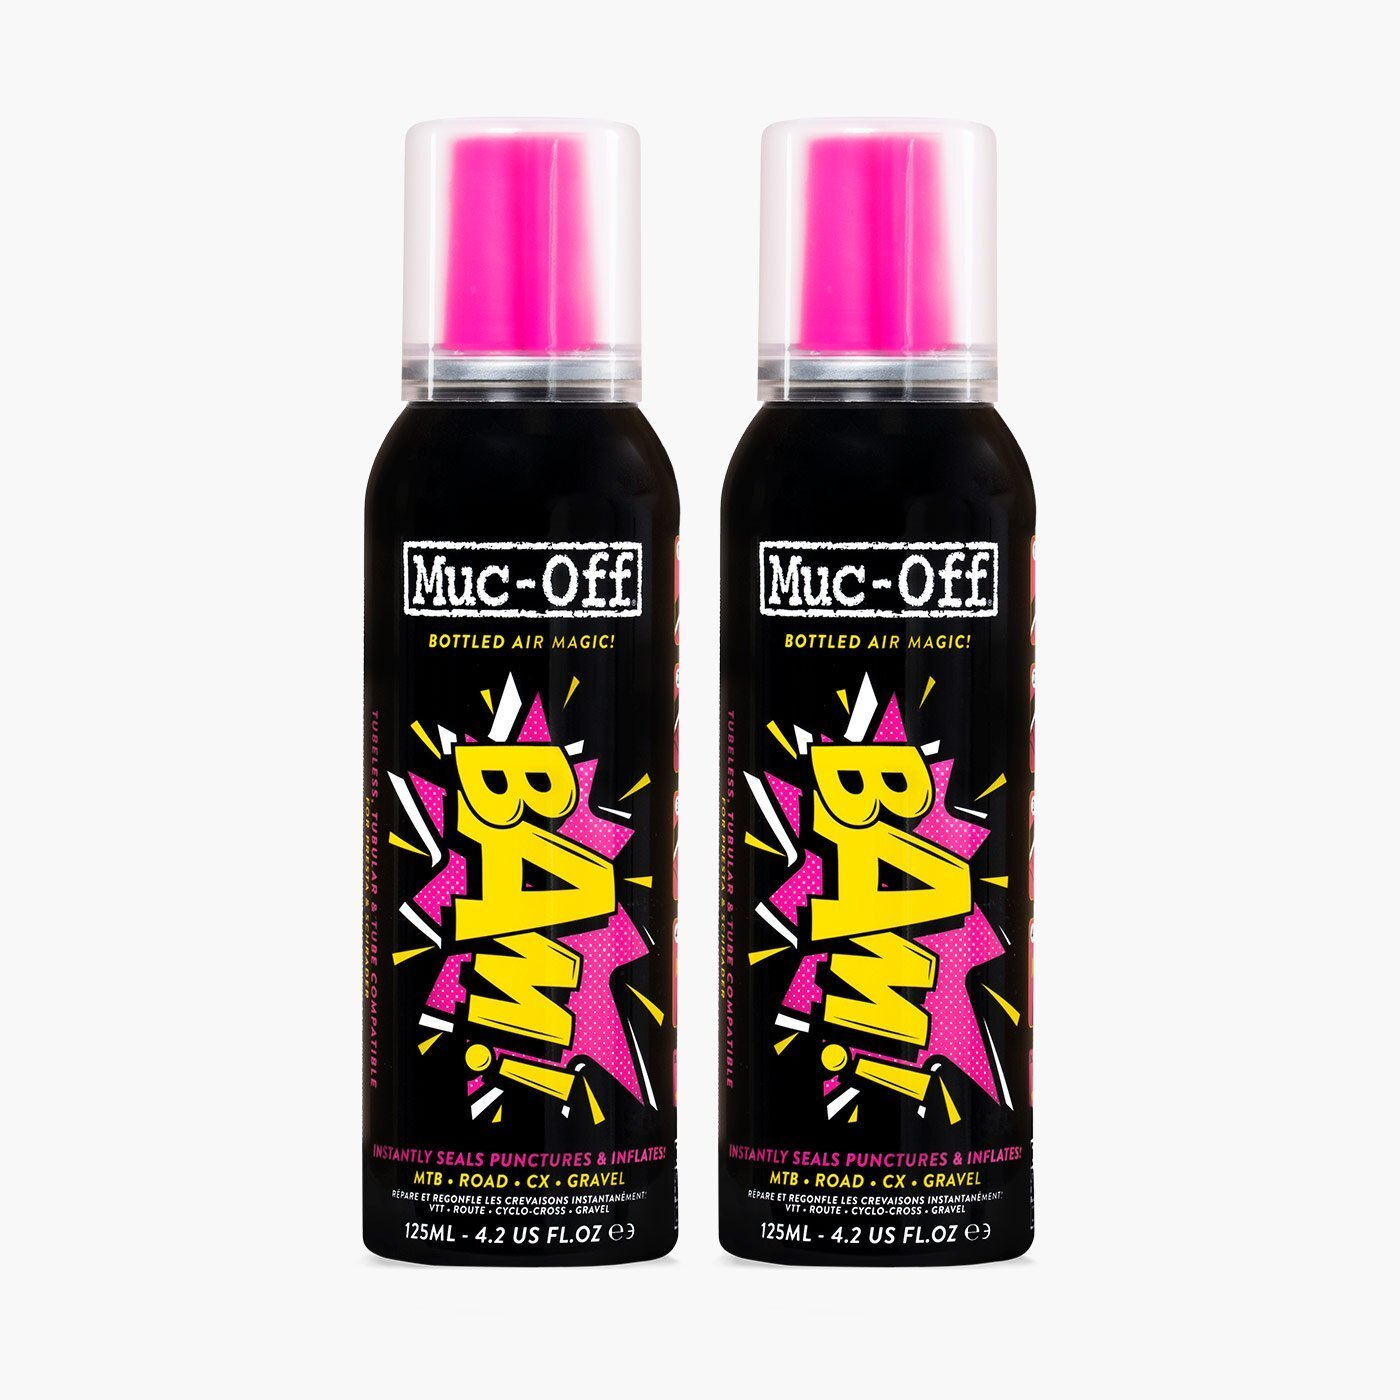 Muc-Off B.A.M! Instant Puncture Repair (Two for £20) - Also extra 15% off Price below for first order. Spend £25 for FREE Postage.